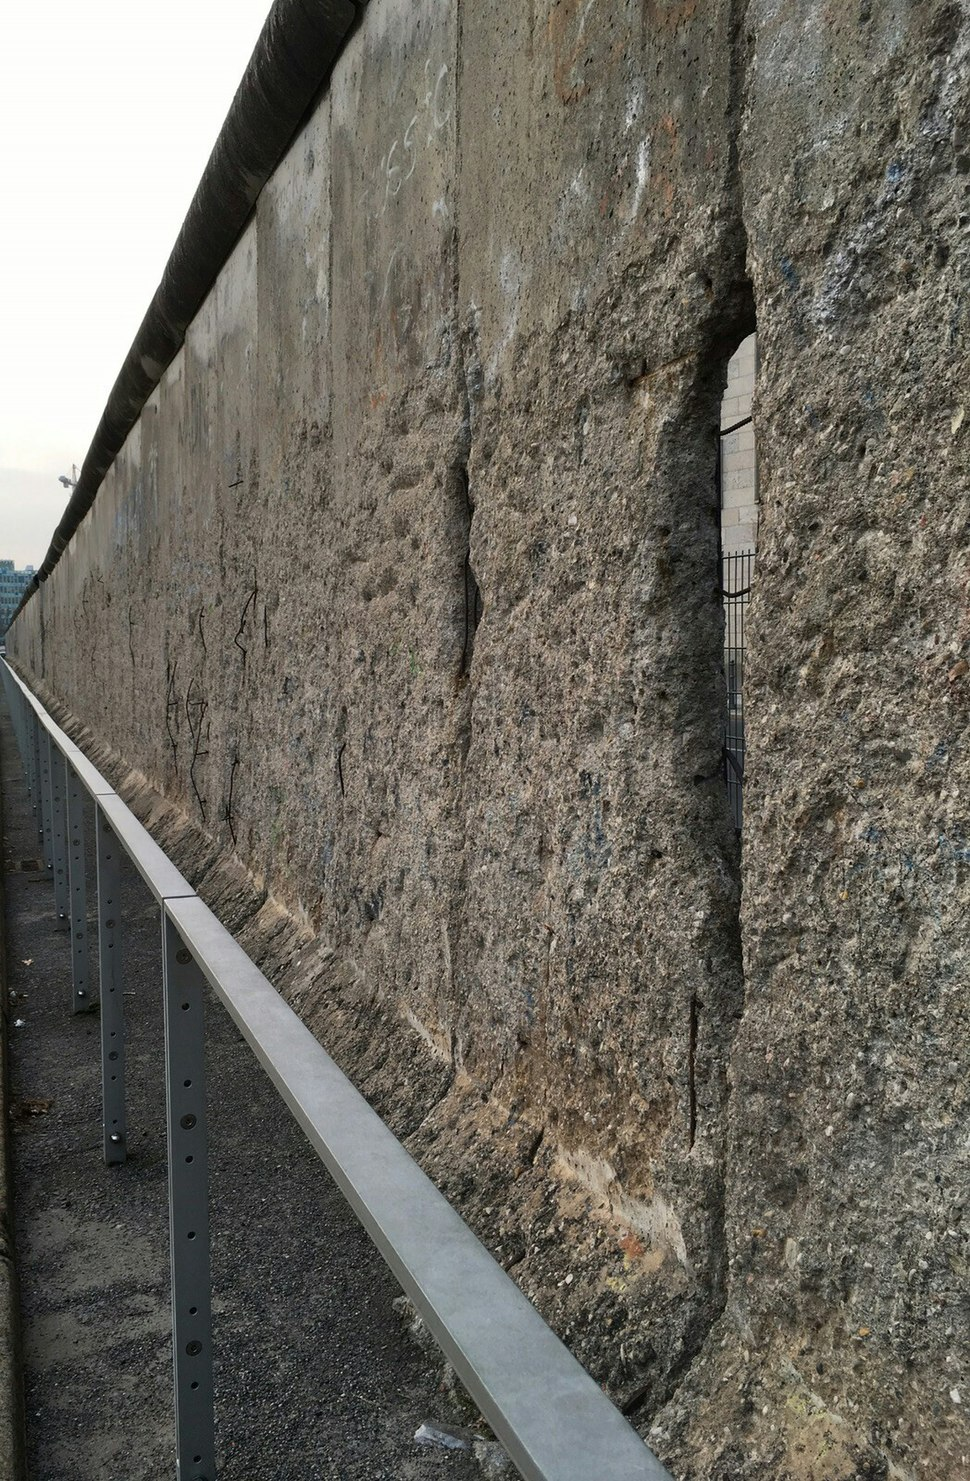 Berlin wall holes